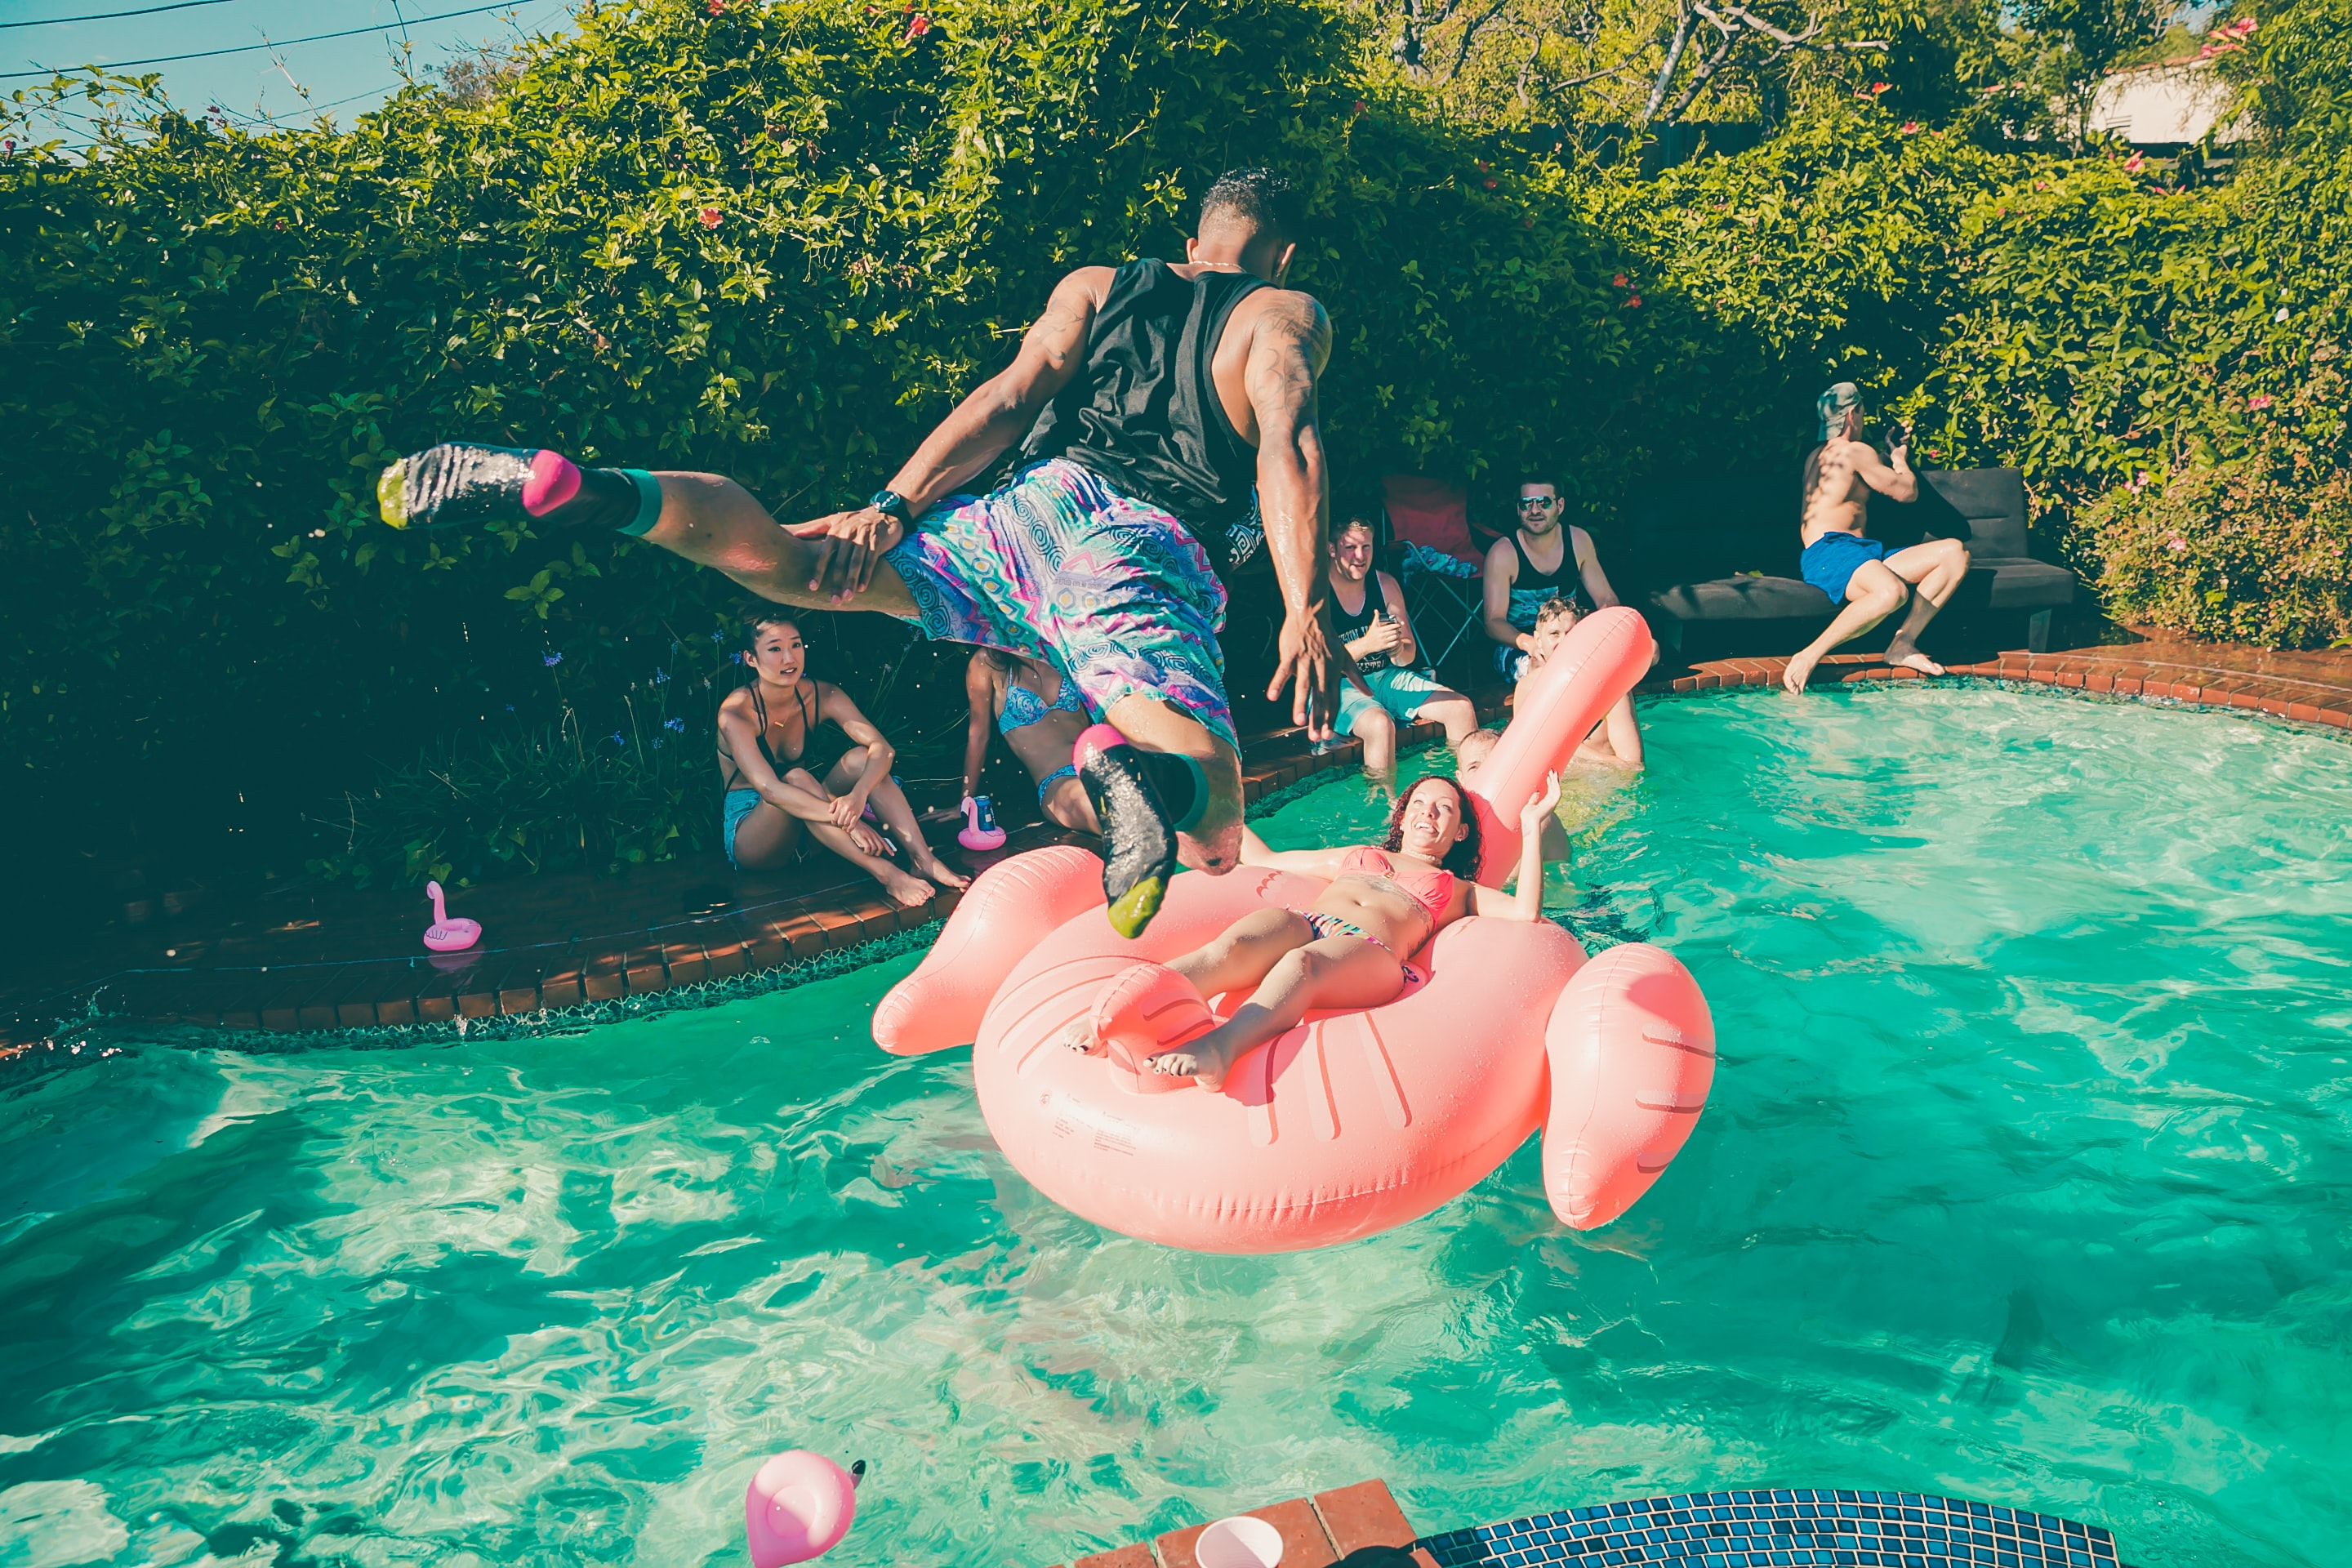 A man diving into a pool at a party.